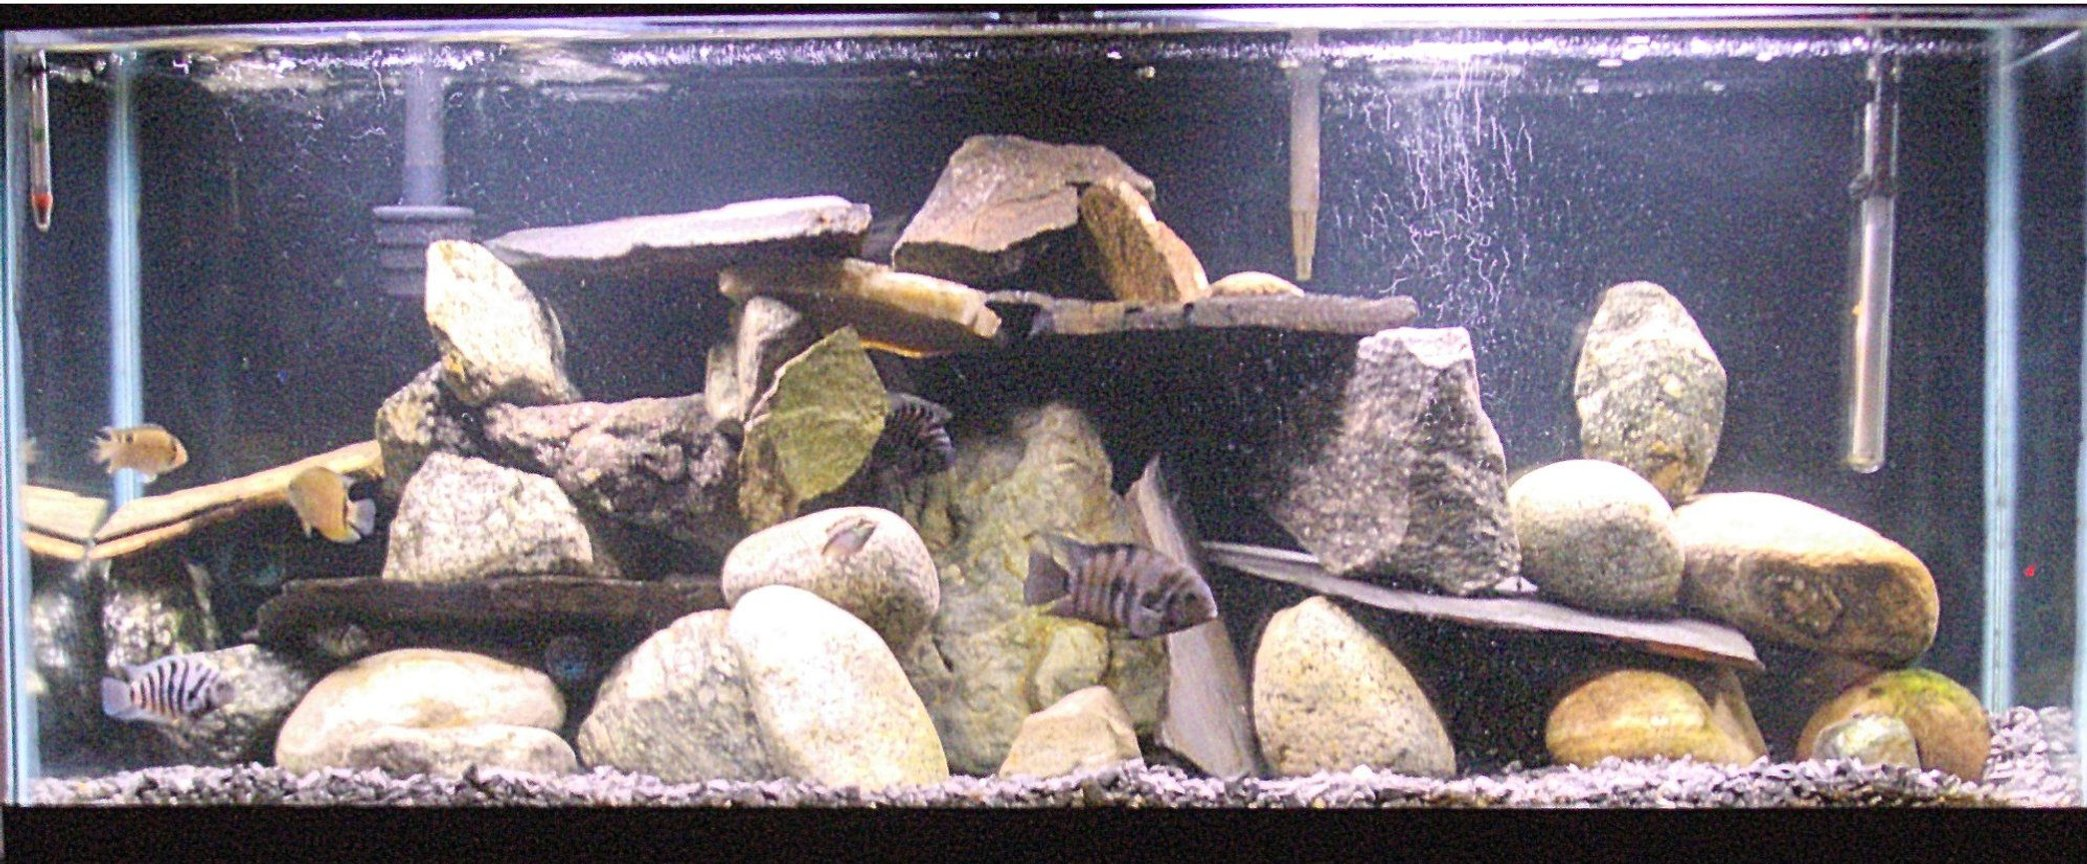 fish tank picture - My 55 gallon. All rocks, Lots of convict Cichlids(they breed like rabbits) a couple of Jack Dempseys, Clown loaches, Severums, a Krib, a Ram, and a couple of plecs. Most of these guys are camera shy.